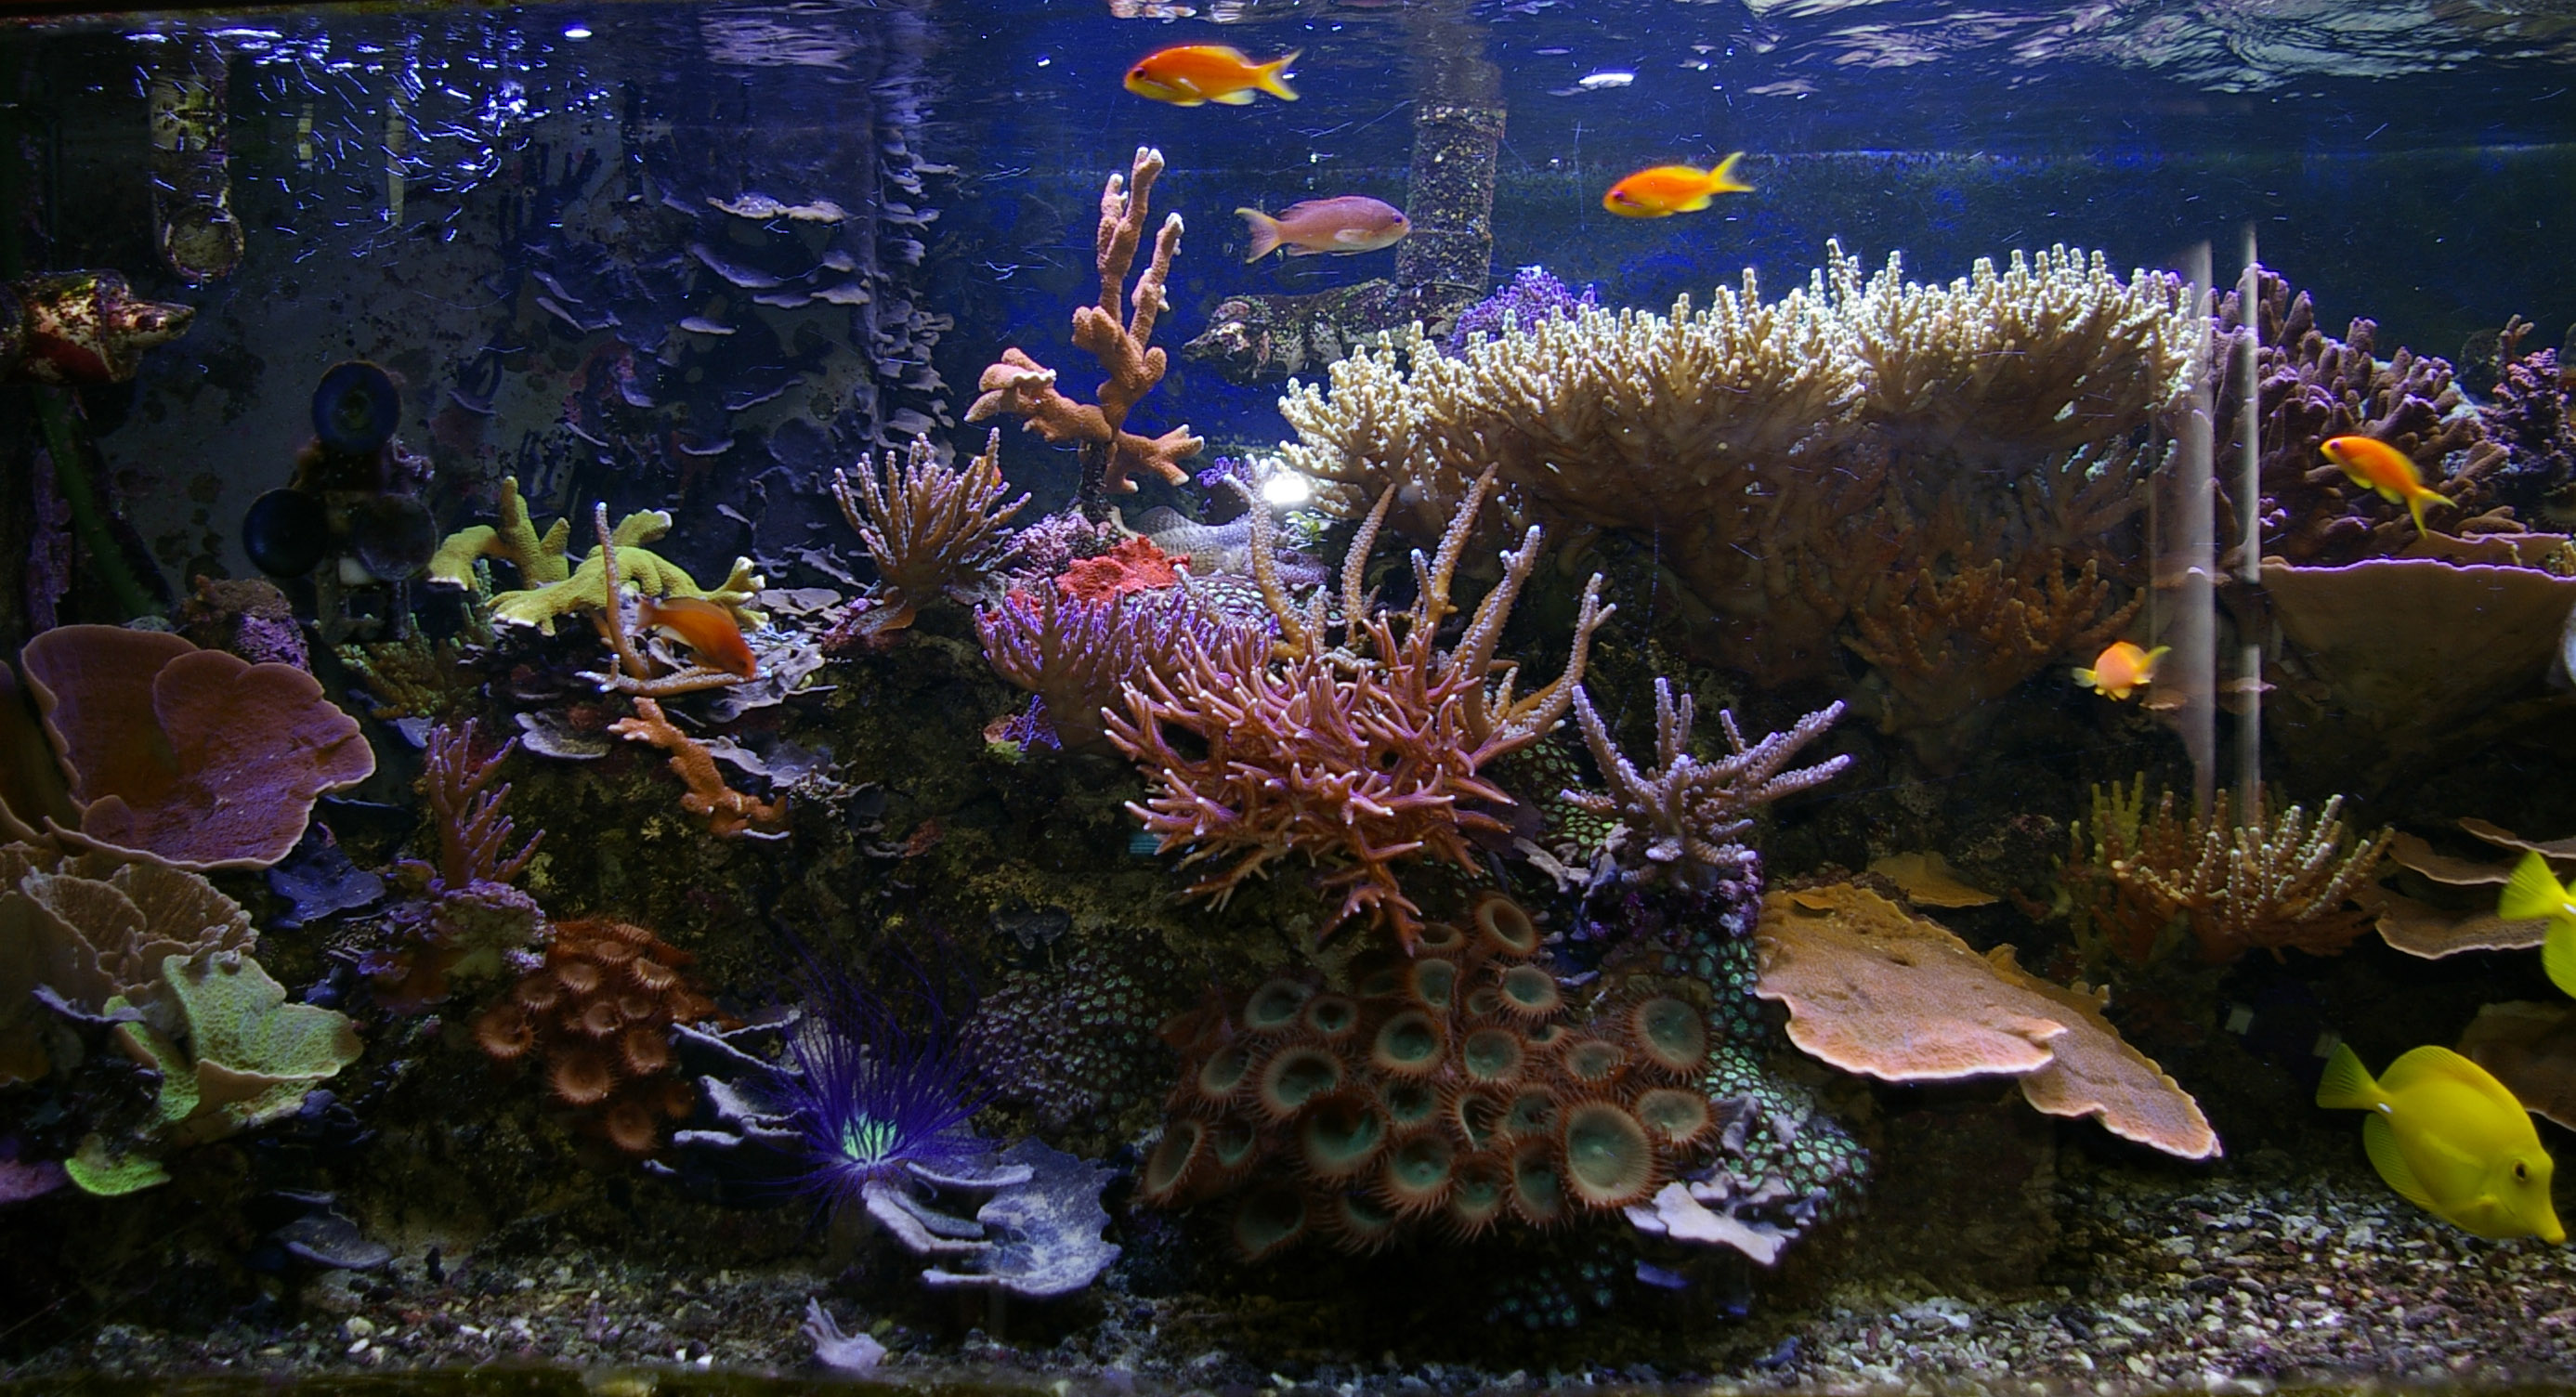 Tropical fish for tanks uk - Colourful Fish And Corals In A Saltwater Aquarium Tank